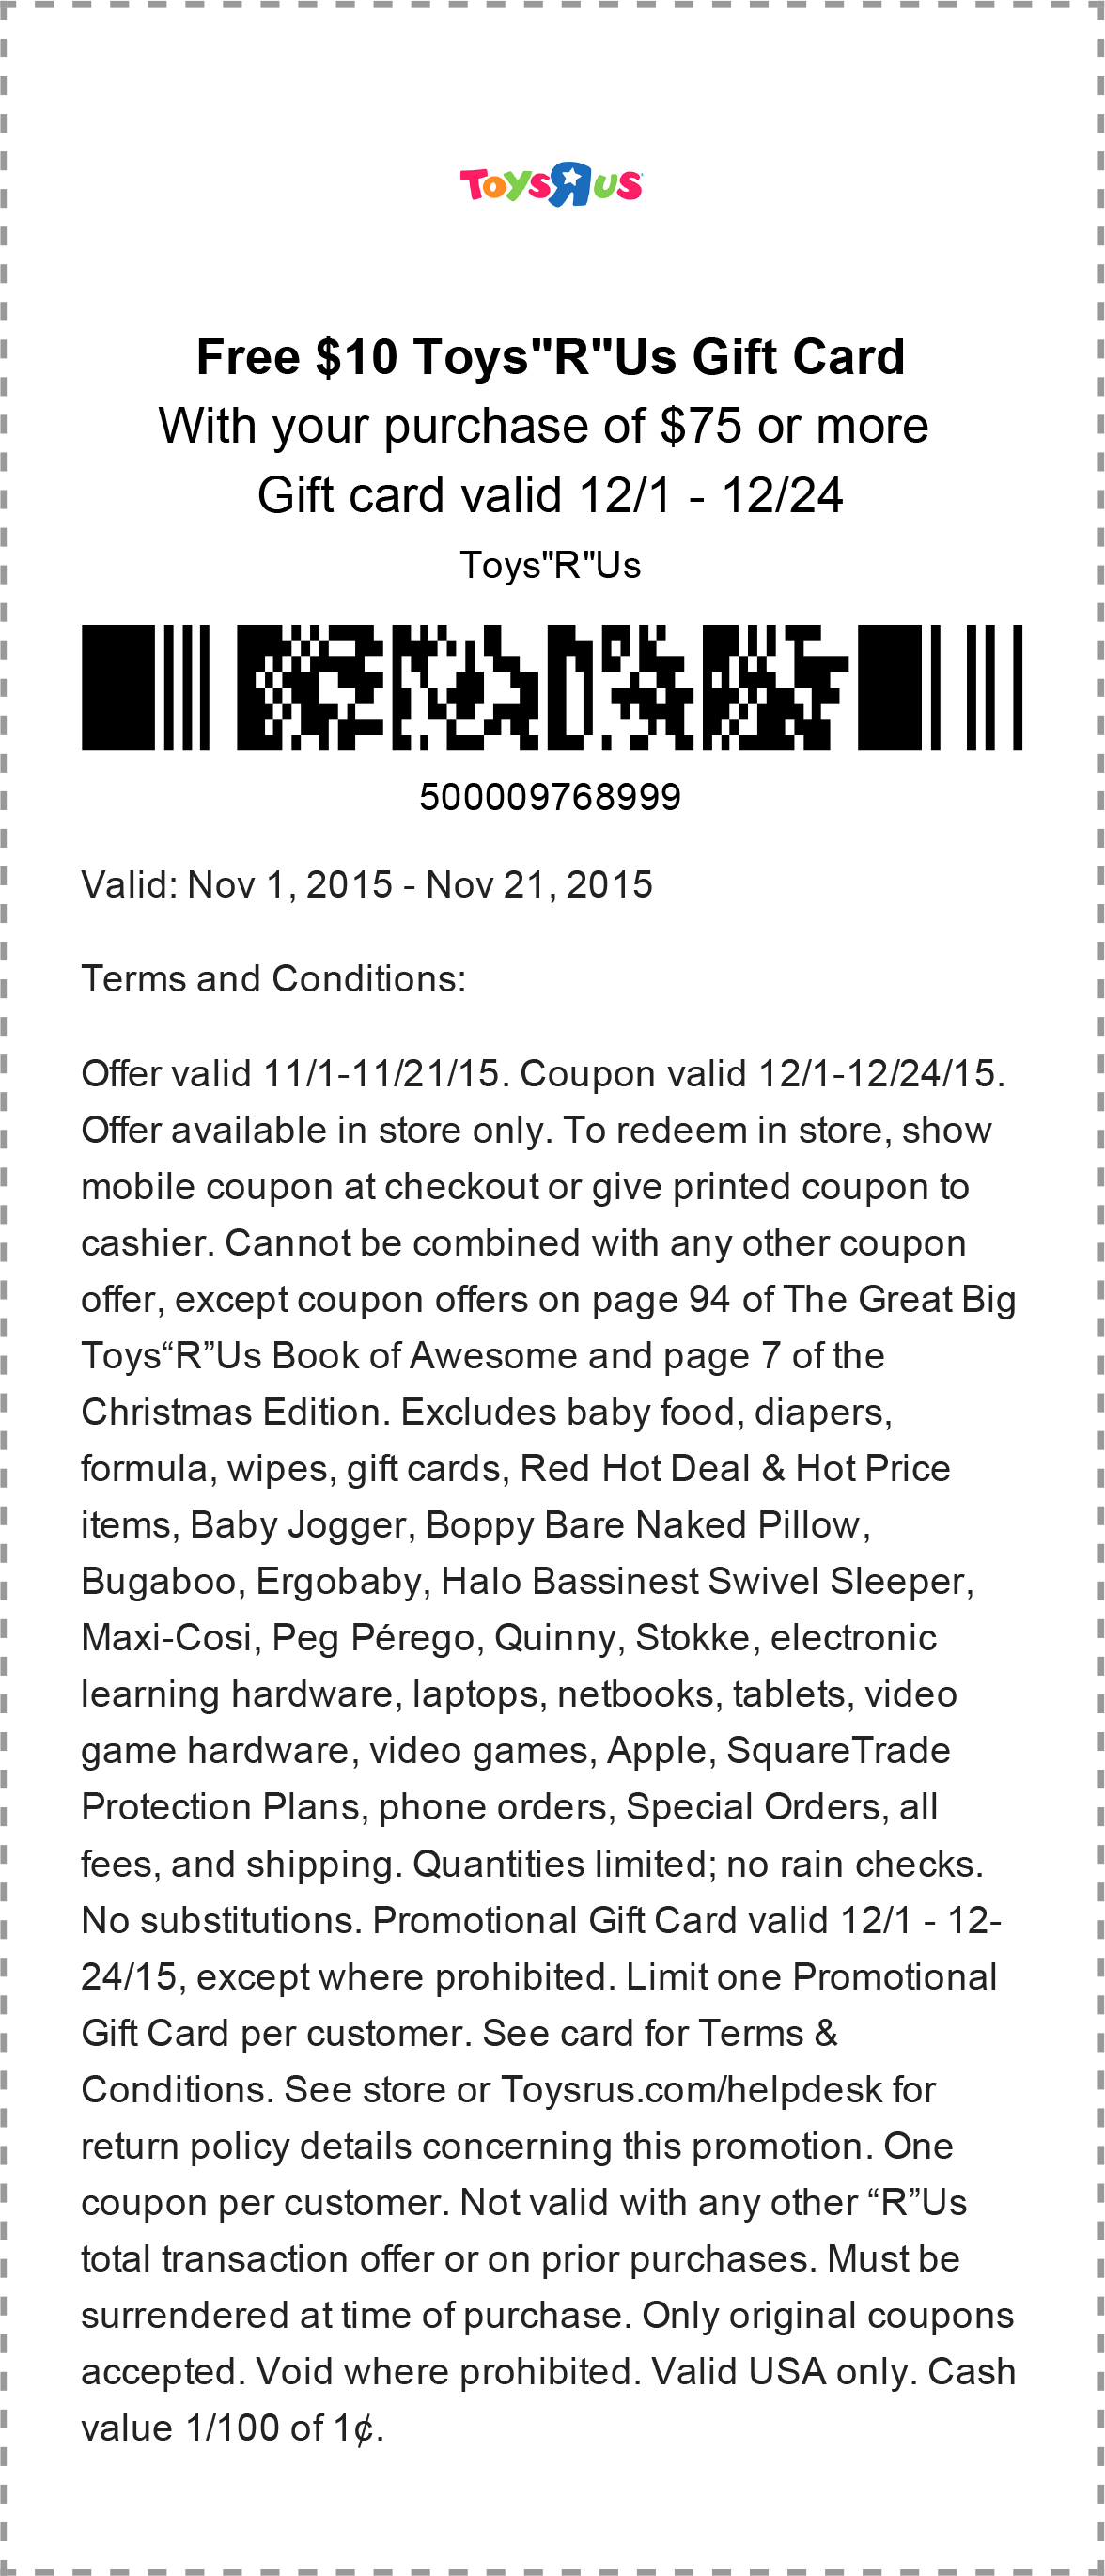 Toys R Us Coupon January 2017 $10 gift card free with $75 spent at Toys R Us